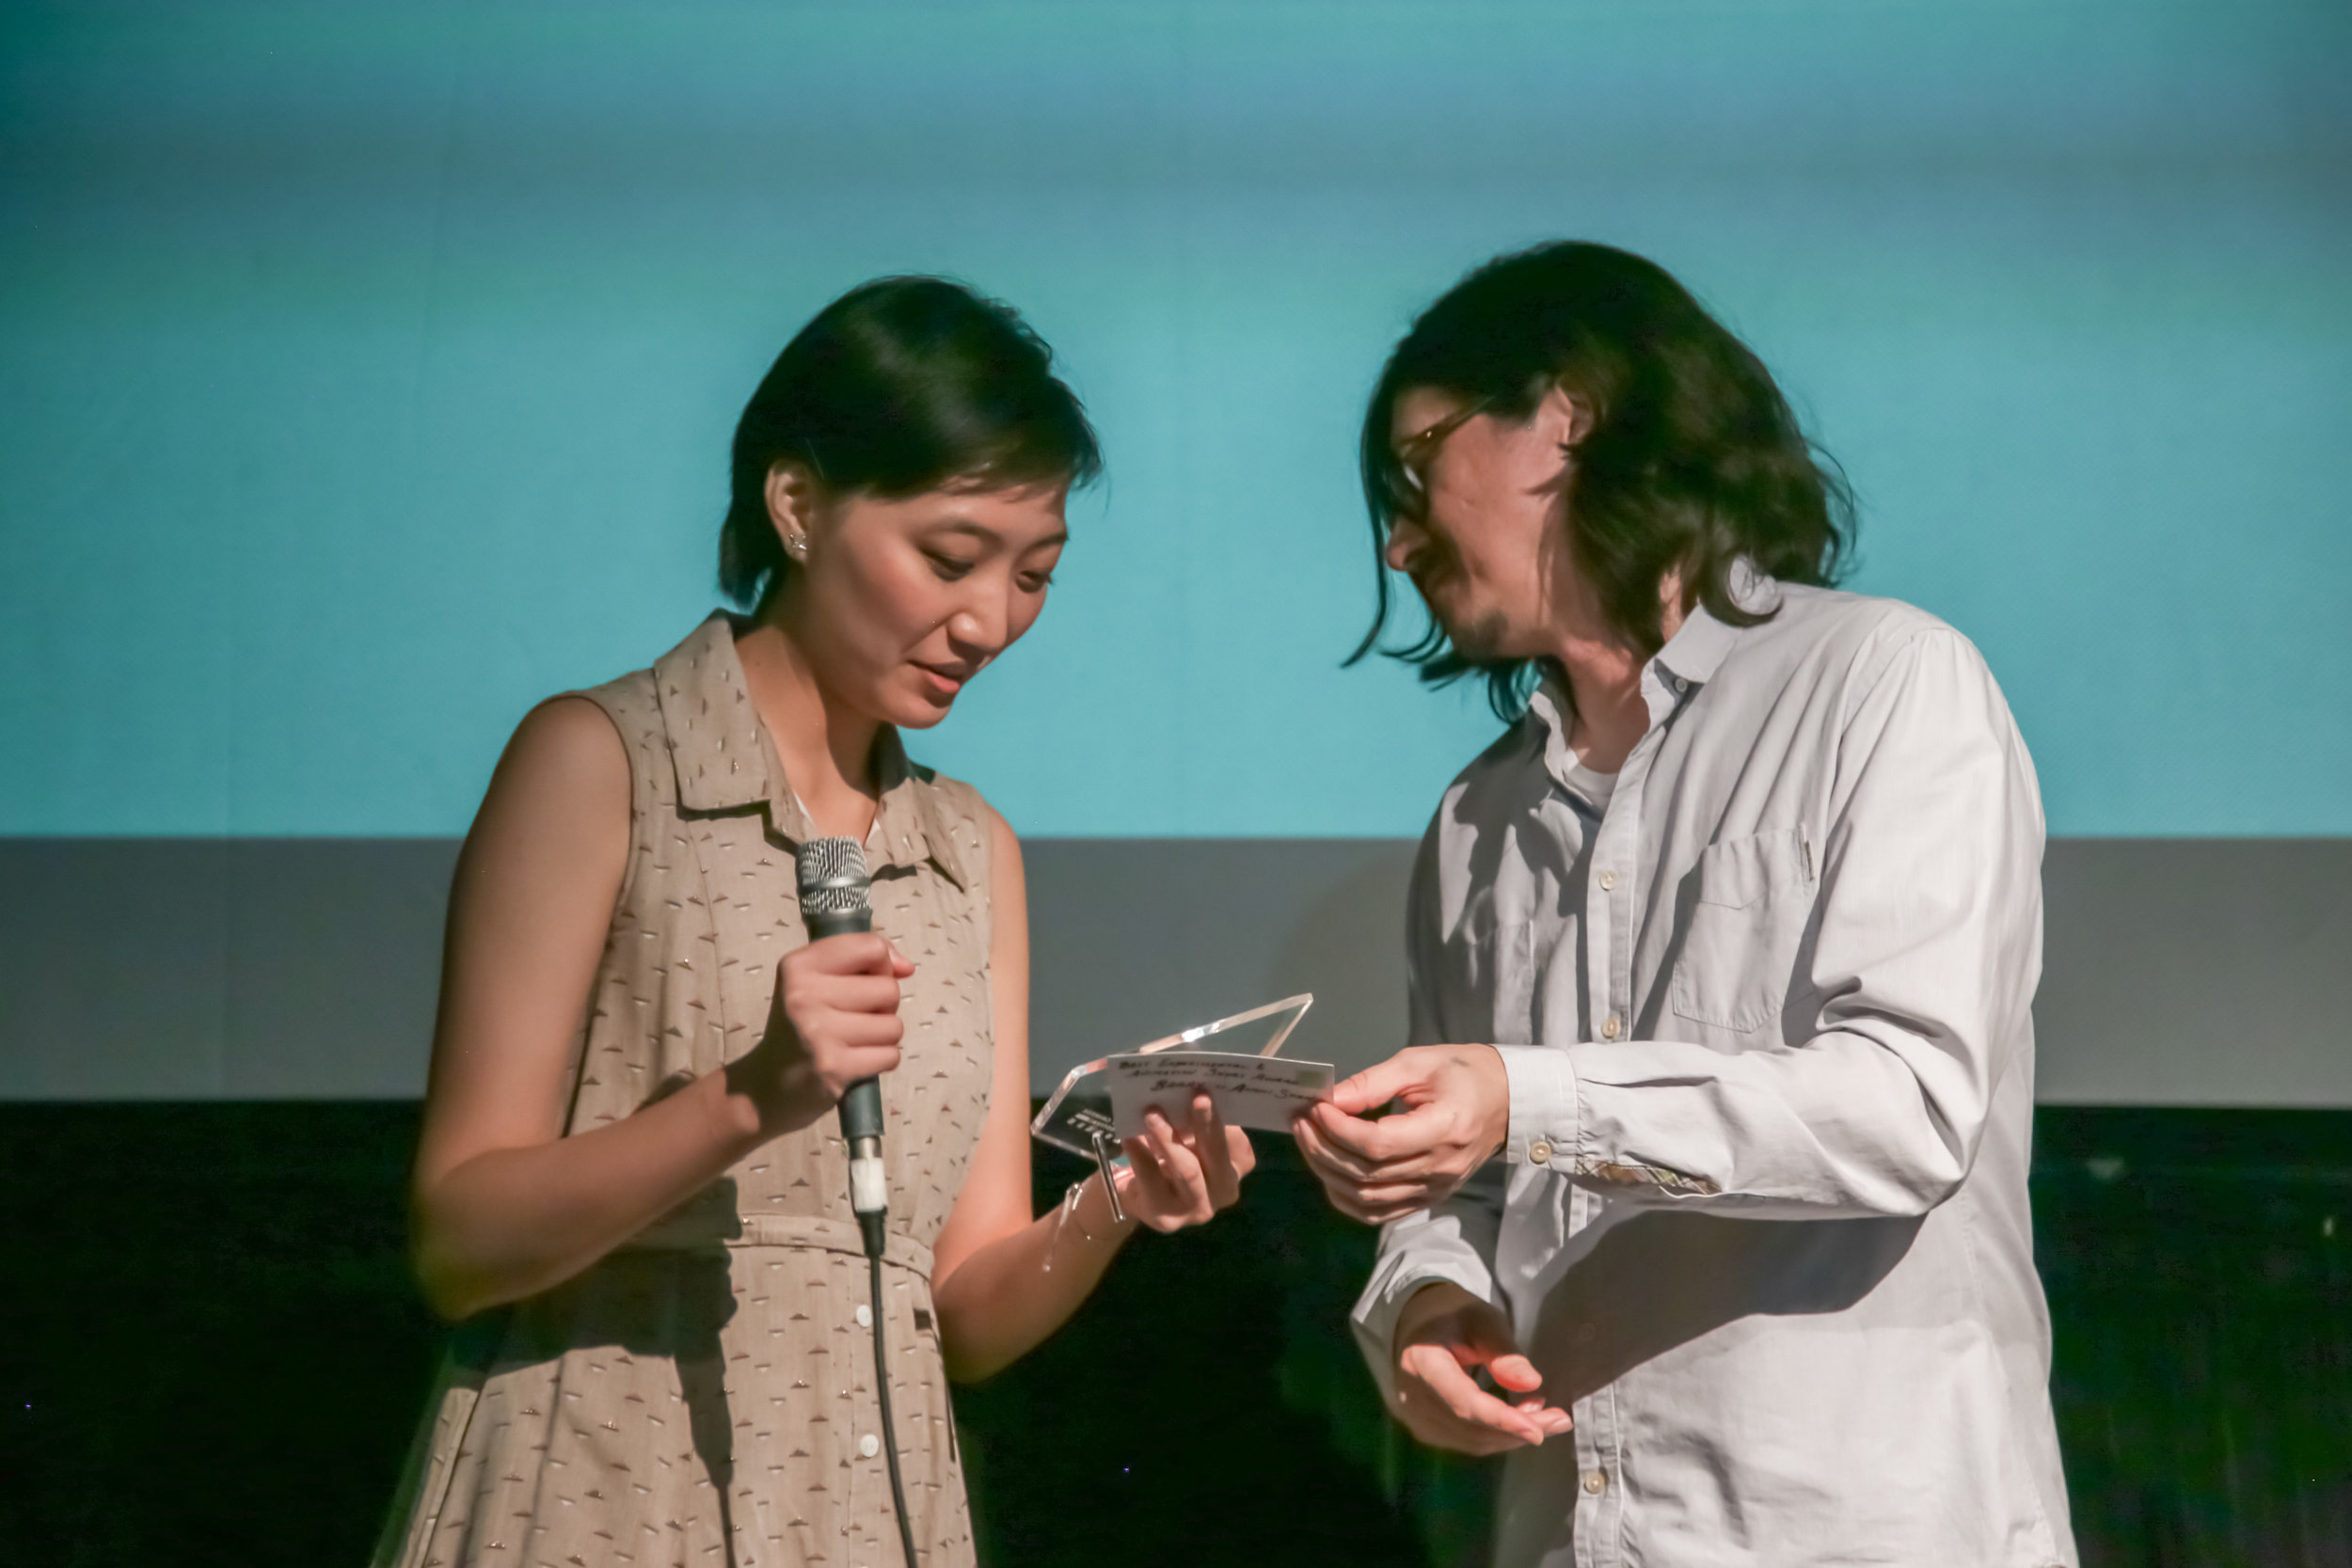 Jury member Helder Sun (right) presents the Best Experimental/Animation Short Award to Director Anchi Shen (left).